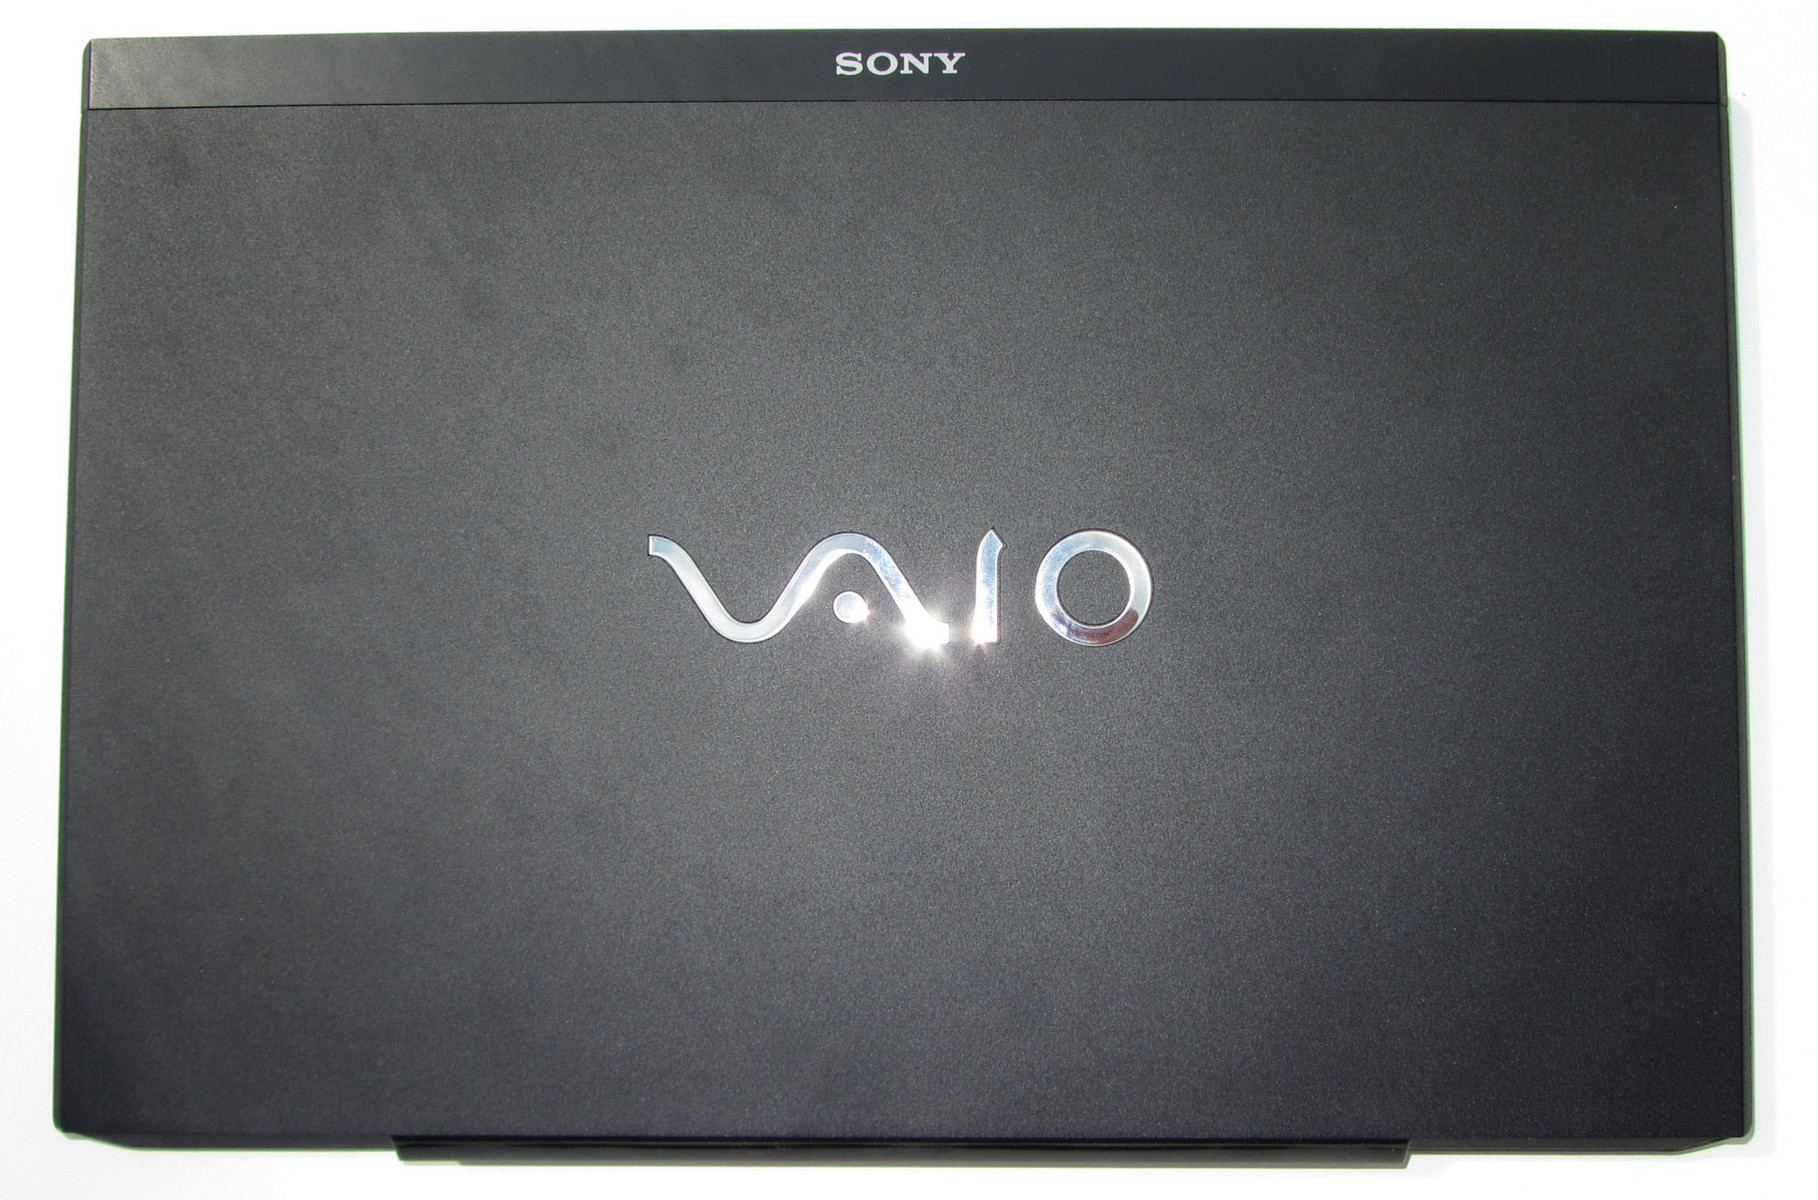 Sony Vaio VPCZ22TGX Huawei Gobi 3000 Modem Driver for Windows 7